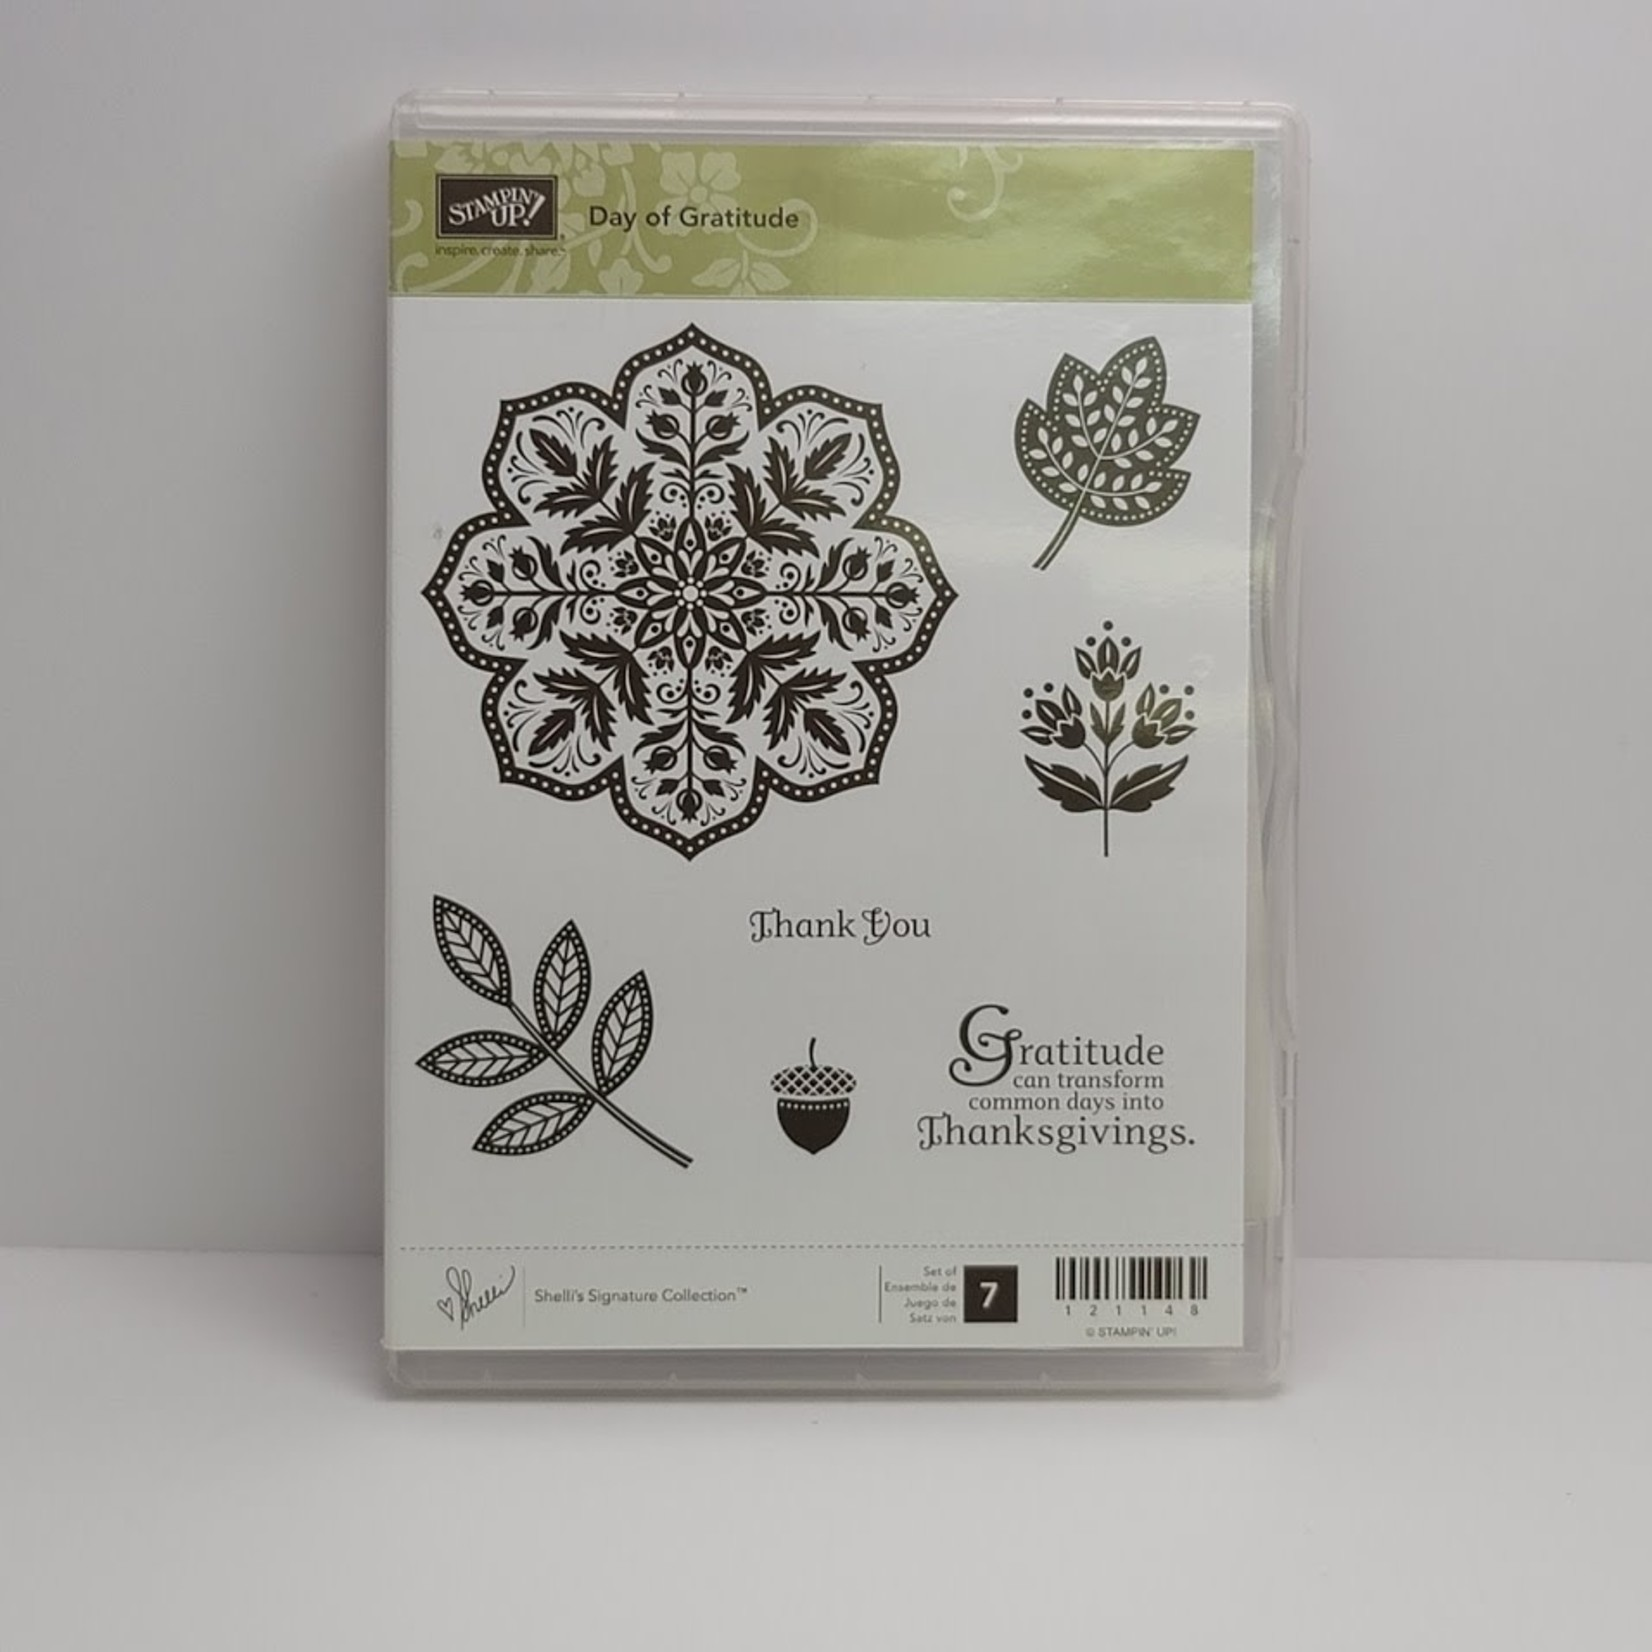 Stampin' Up Stampin' up - Cling Stamps - Day of Gratitude